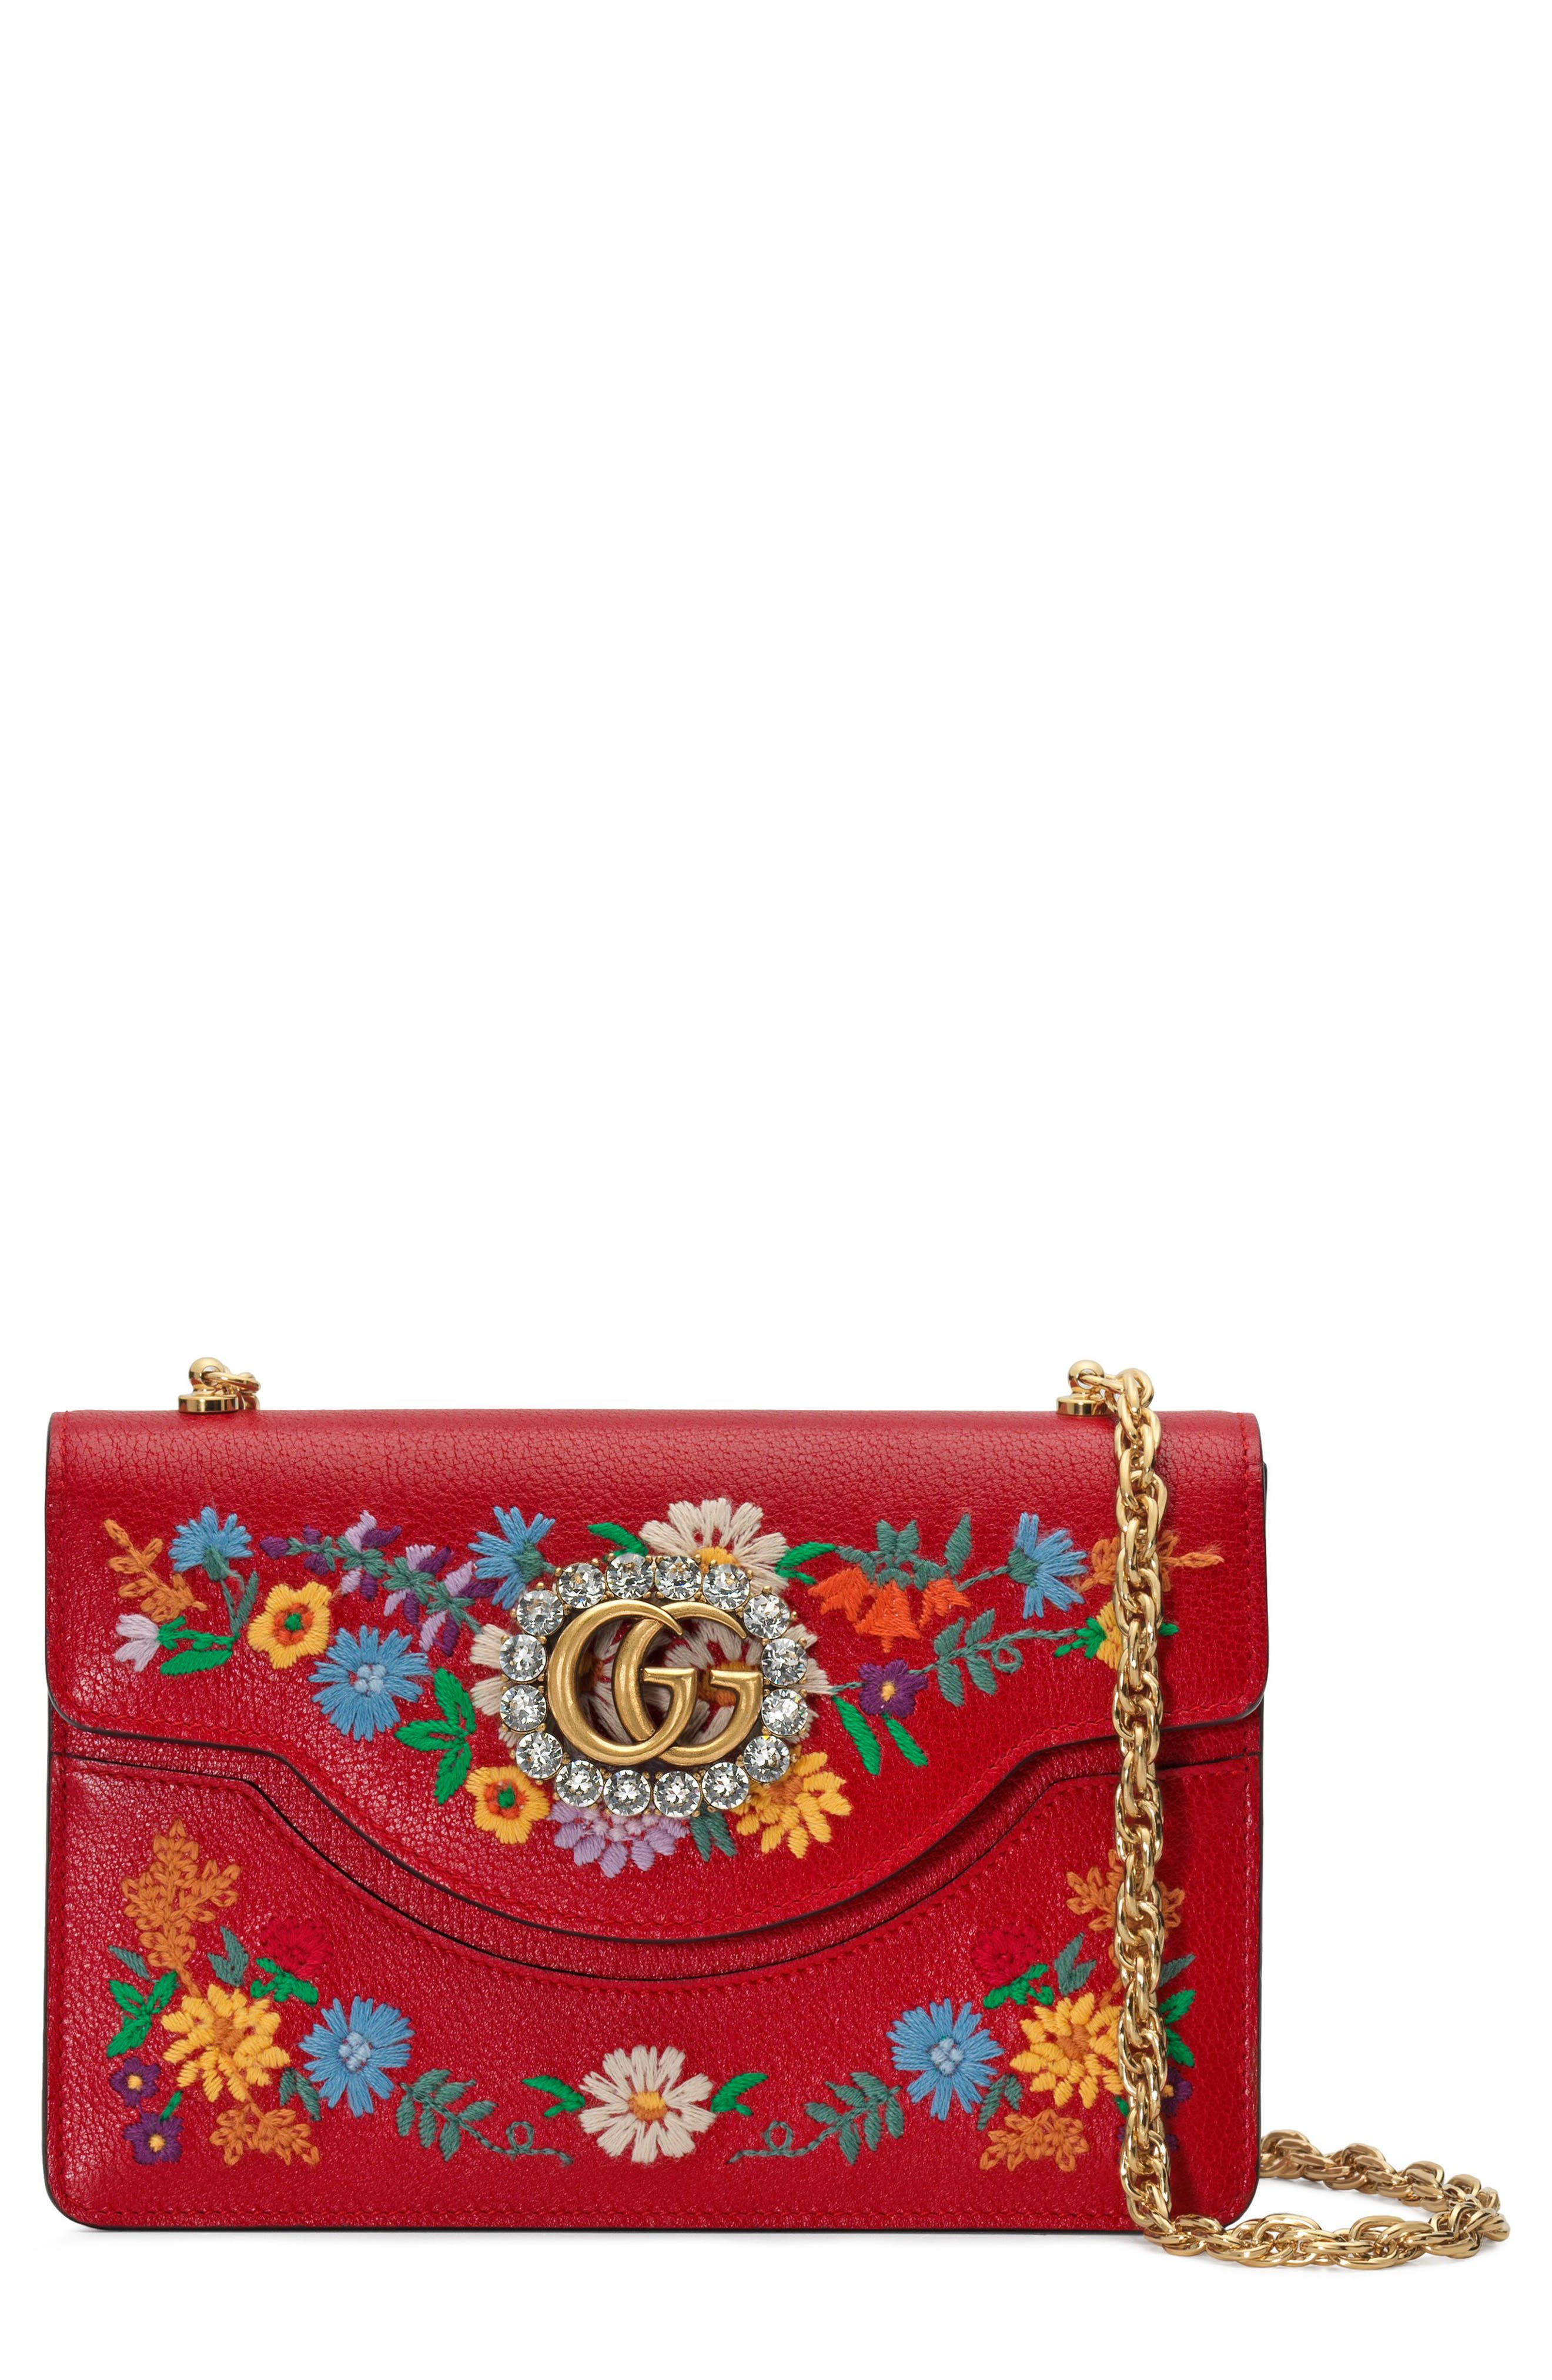 Small Linea Ricami Floral Embroidered Shoulder Bag,                             Main thumbnail 1, color,                             Hibiscus Red Multi